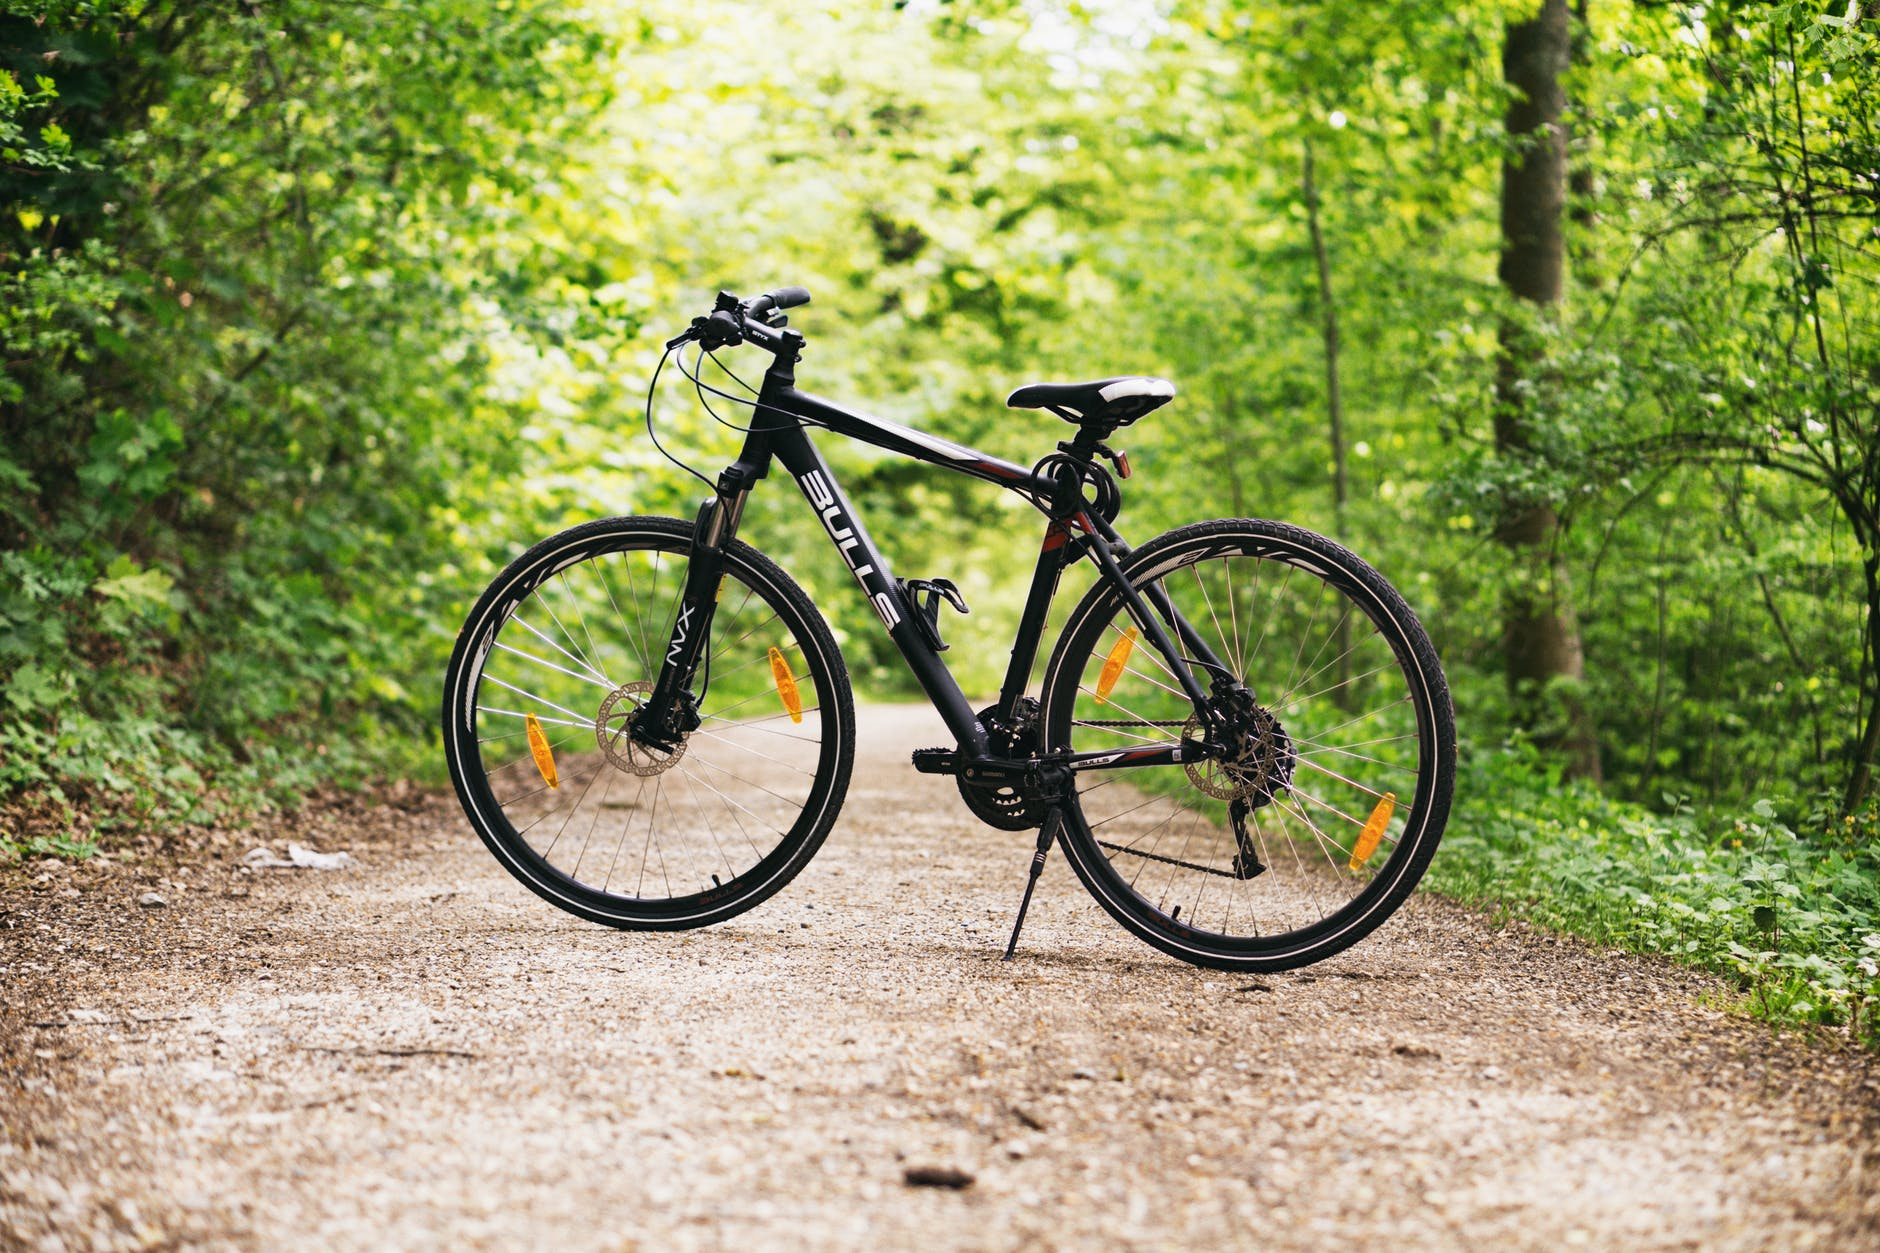 black and white hardtail bike on brown road between trees